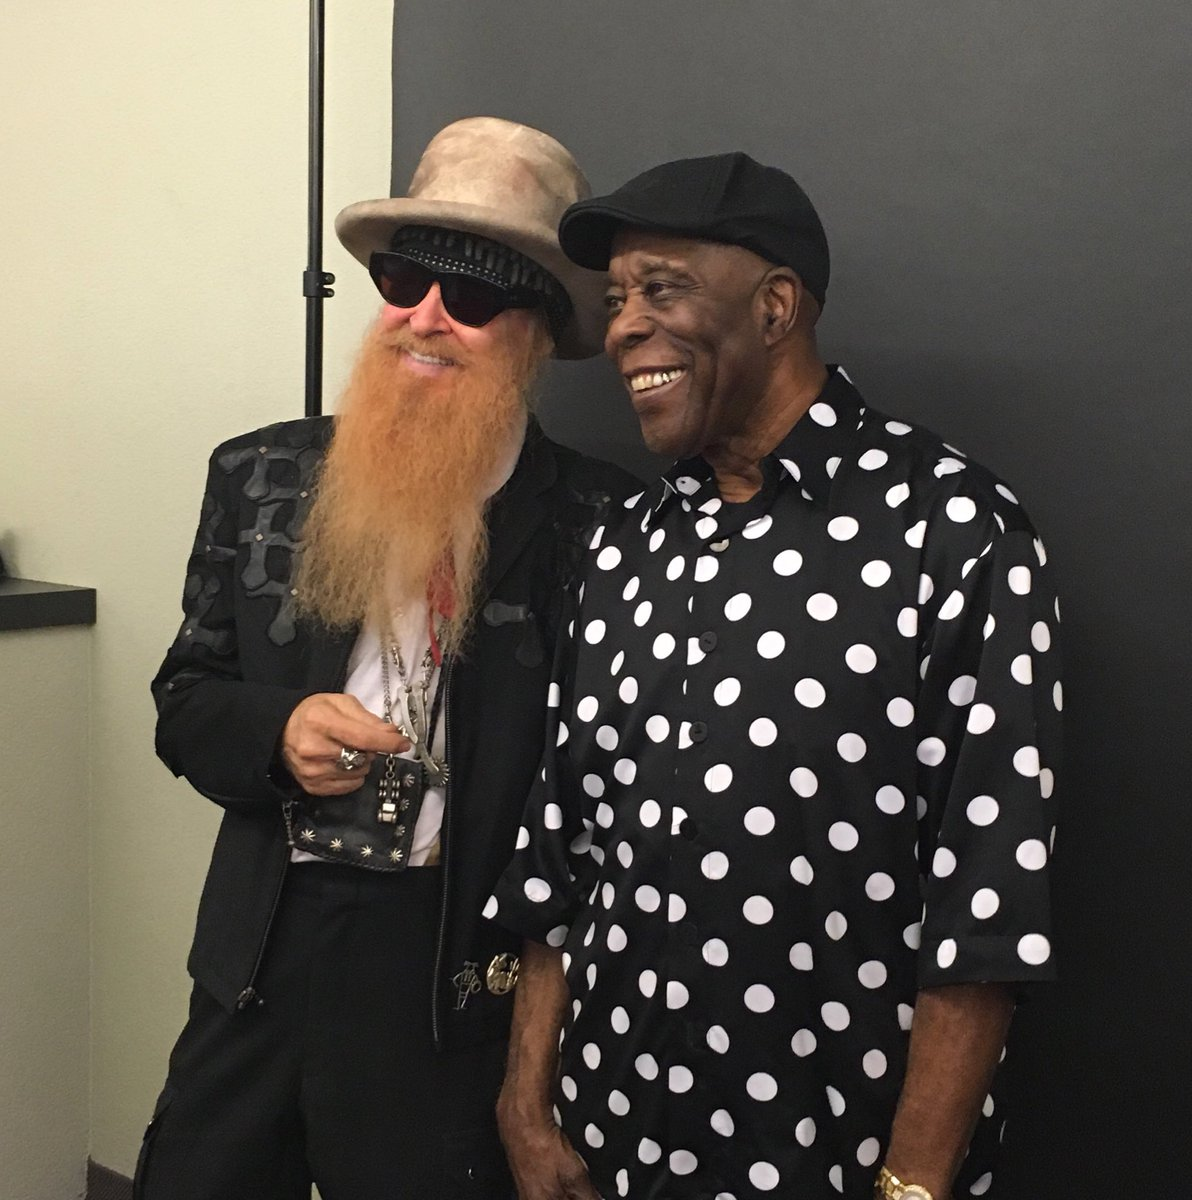 Picture time for @TheRealBuddyGuy and Billy Gibbons @ZZTop before going on stage tonight at the #MJF50 https://t.co/uxQcEpUysa